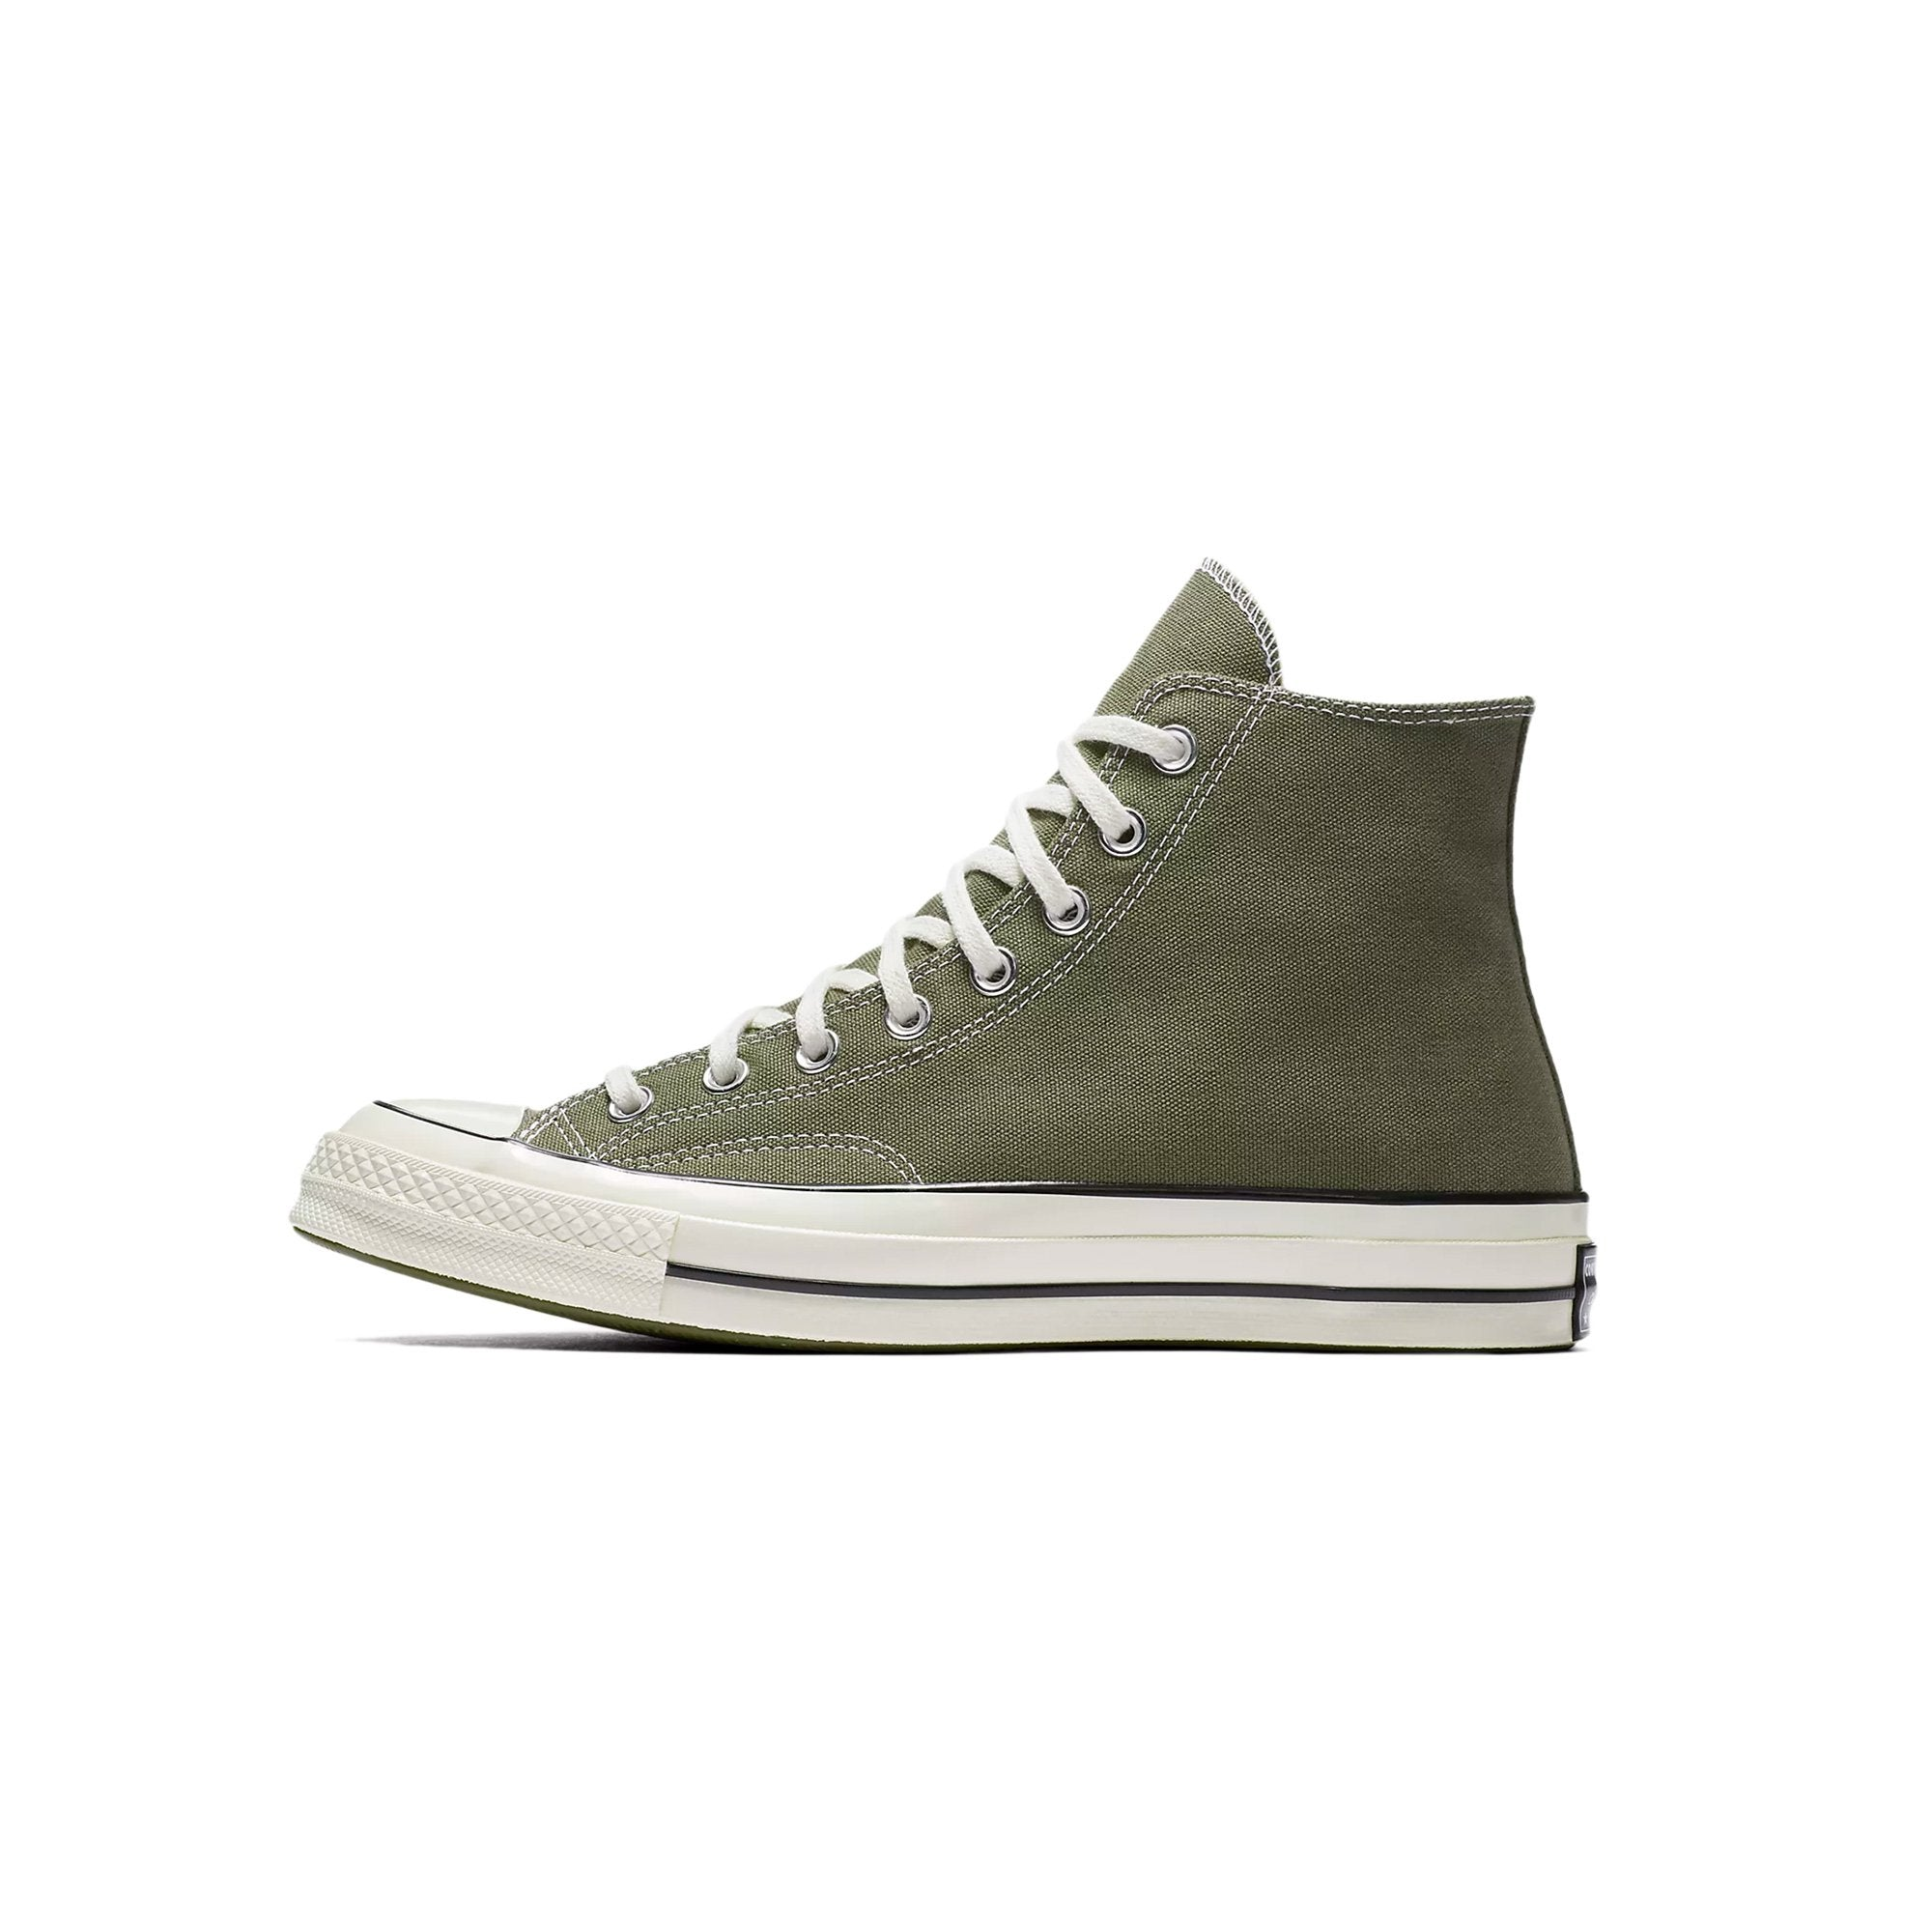 b10f5c3d0db97 Details about Converse Chuck Taylor All Star 70 High Top Field Surplus  Green White 162052C